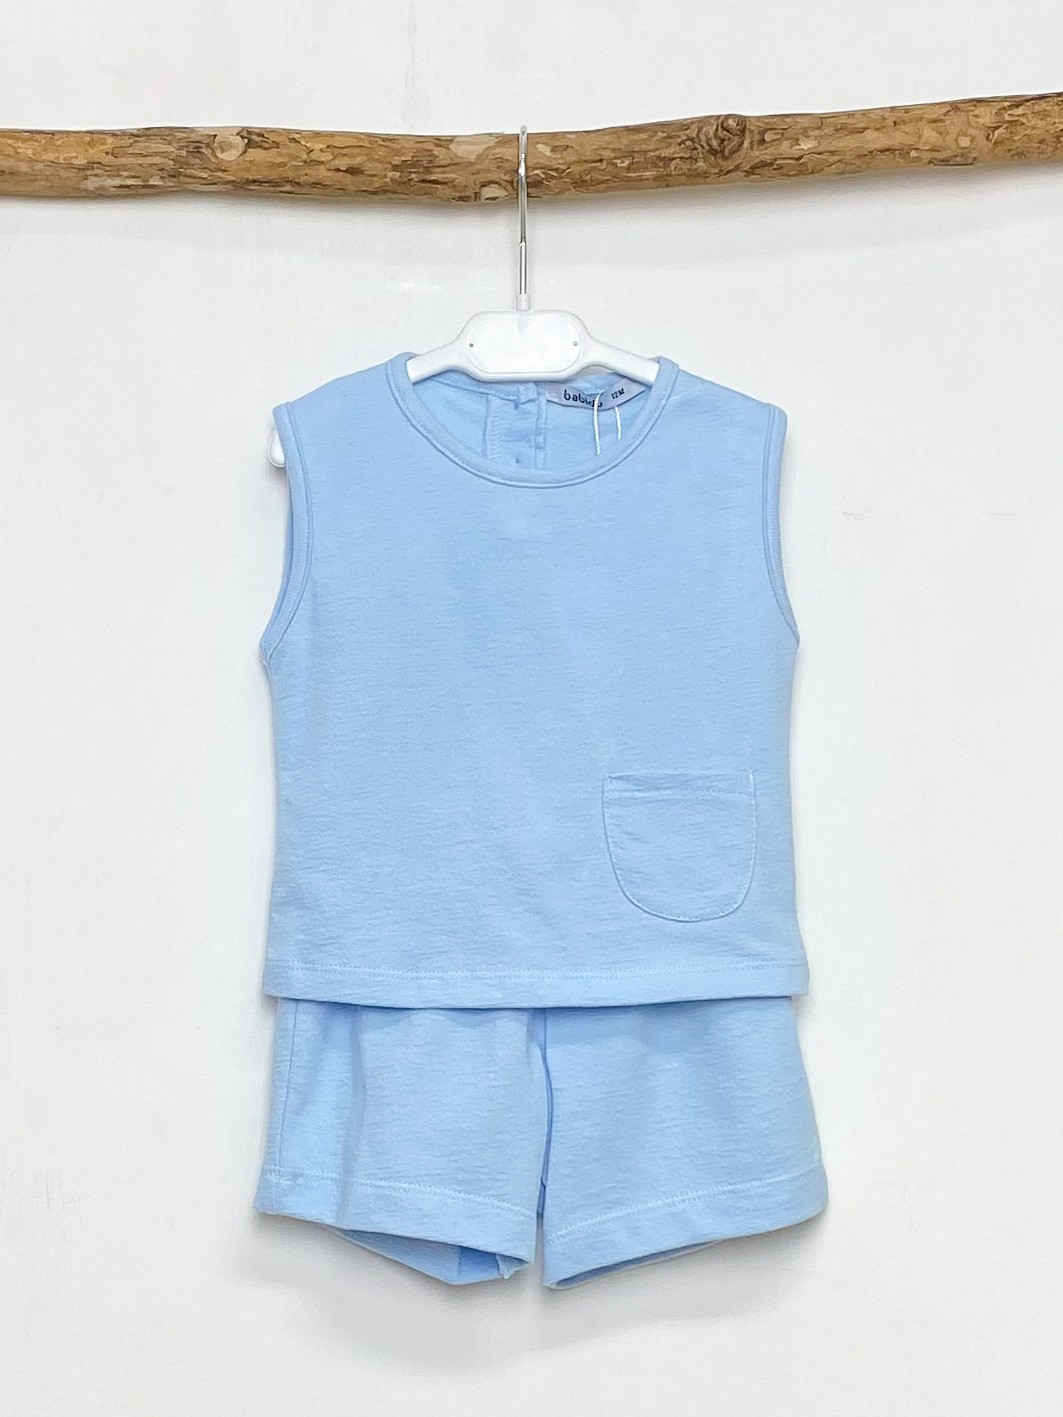 Sky Pocket Vest & Shorts